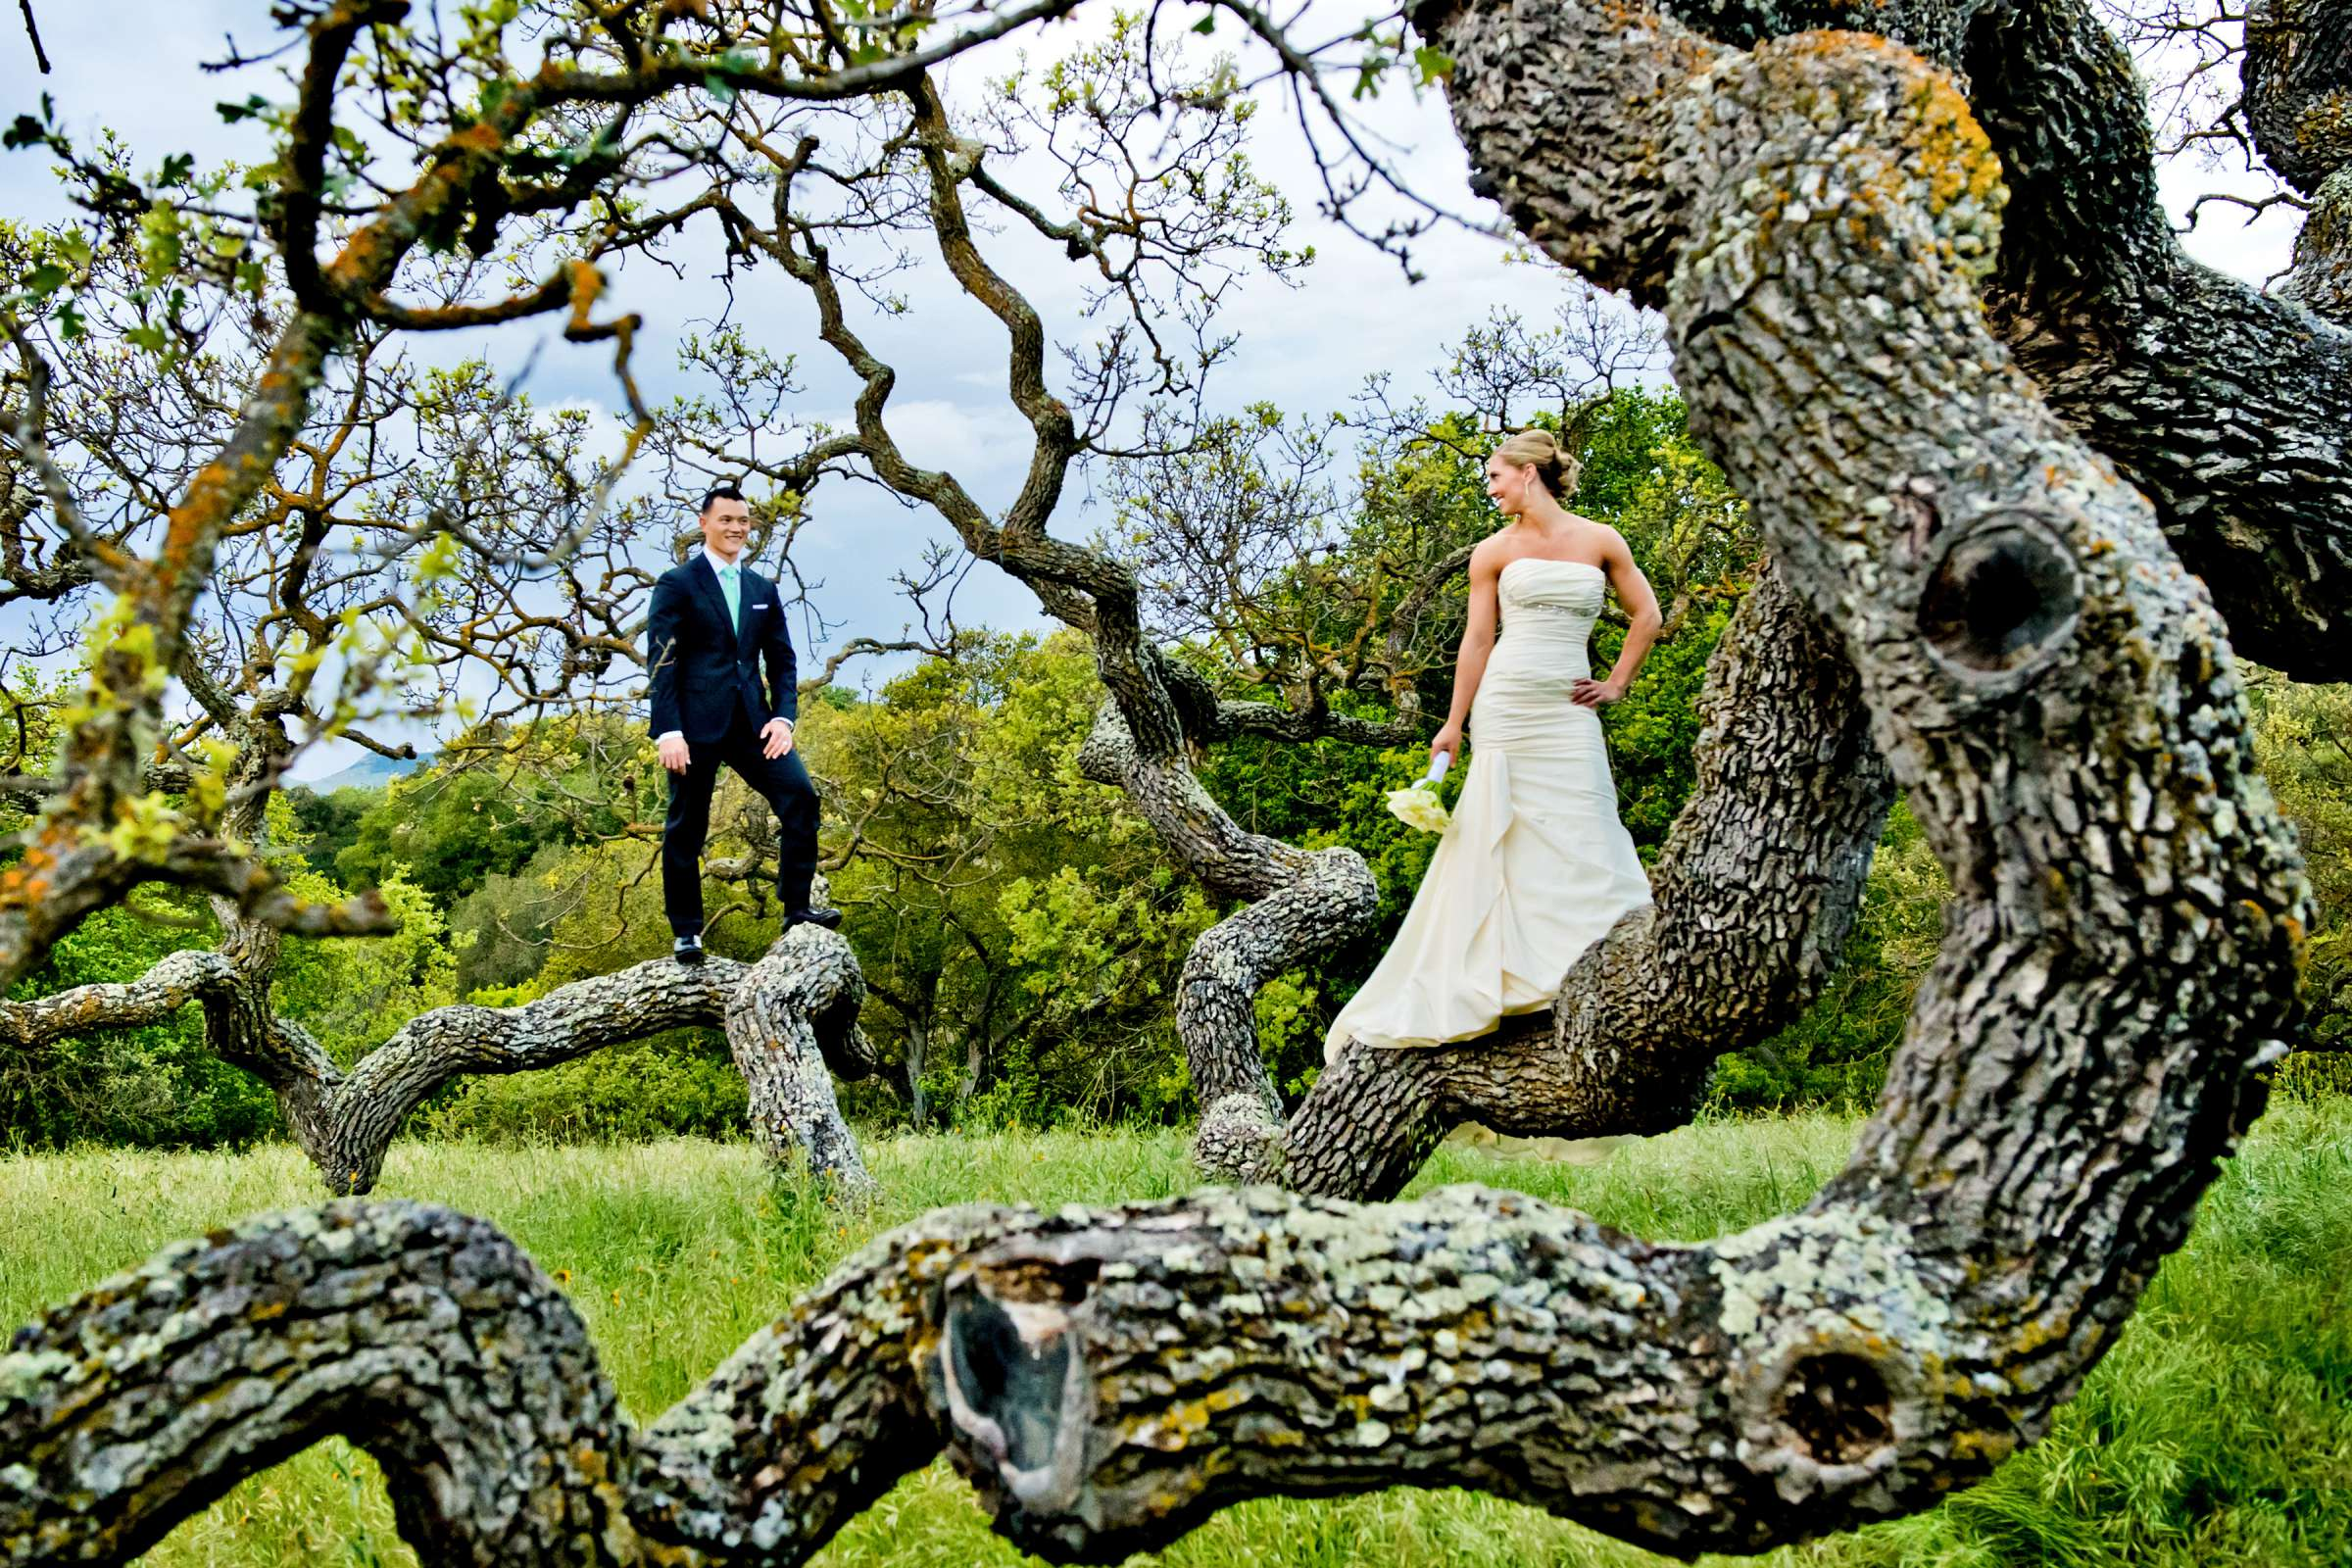 Holman Ranch Wedding, Kaley and Jason Wedding Photo #356234 by True Photography